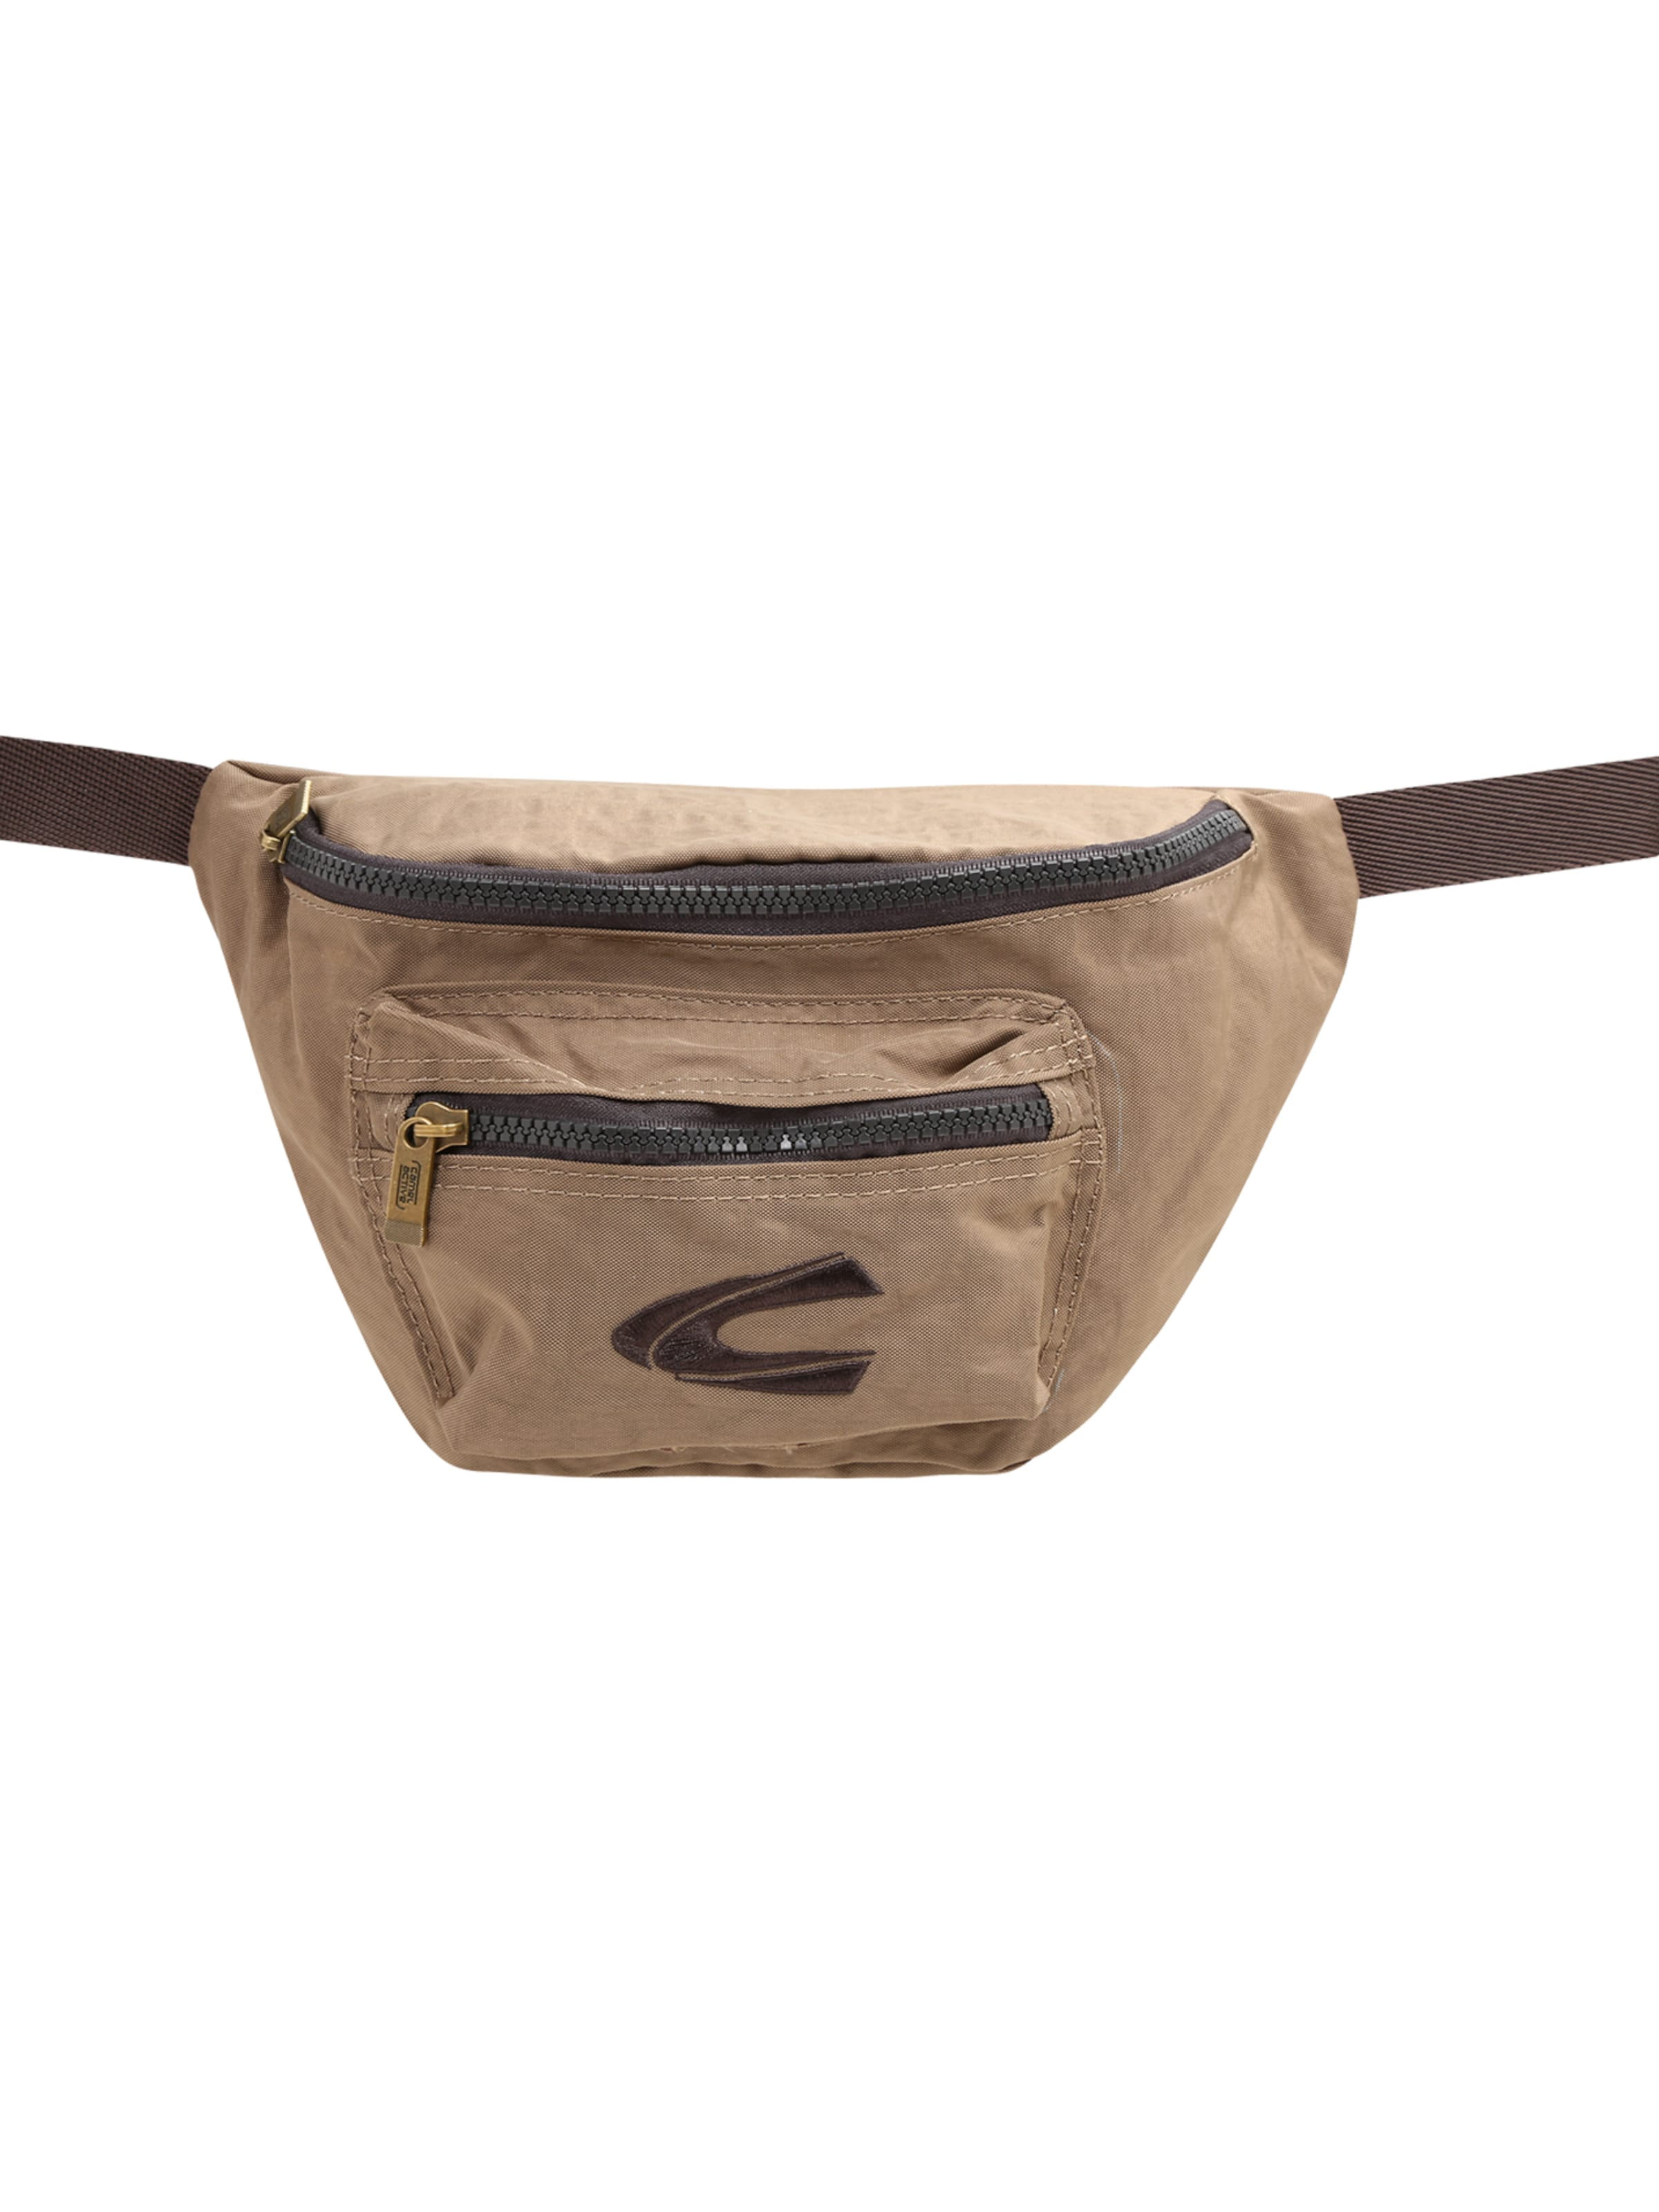 Sacs 'journey' Camel Active En Sable Banane OiZwuXPkT